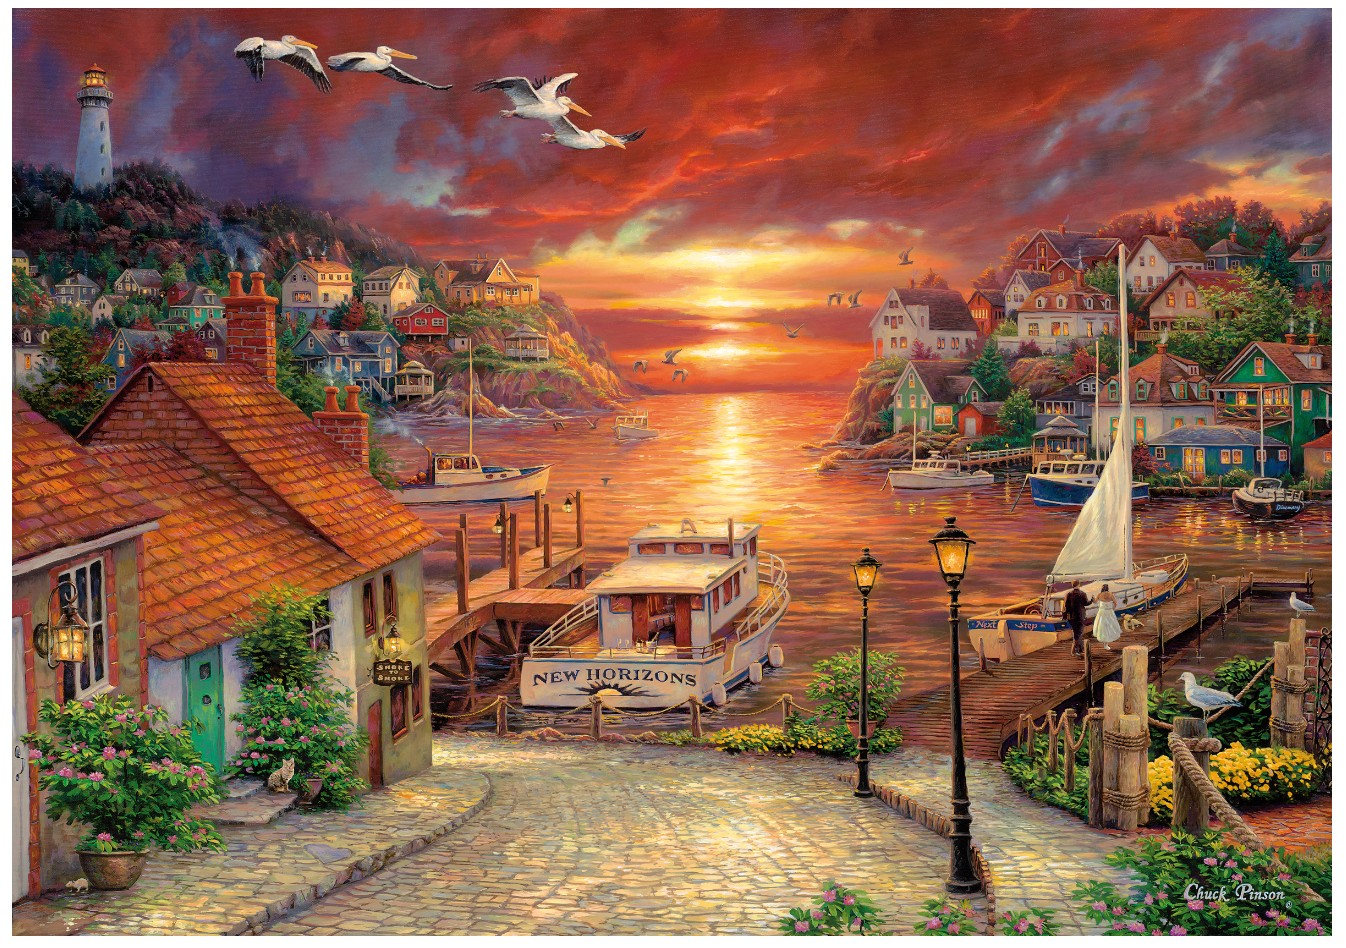 wentworth-holzpuzzle-chuck-pinson-new-horizons-250-teile-puzzle-wentworth-742608